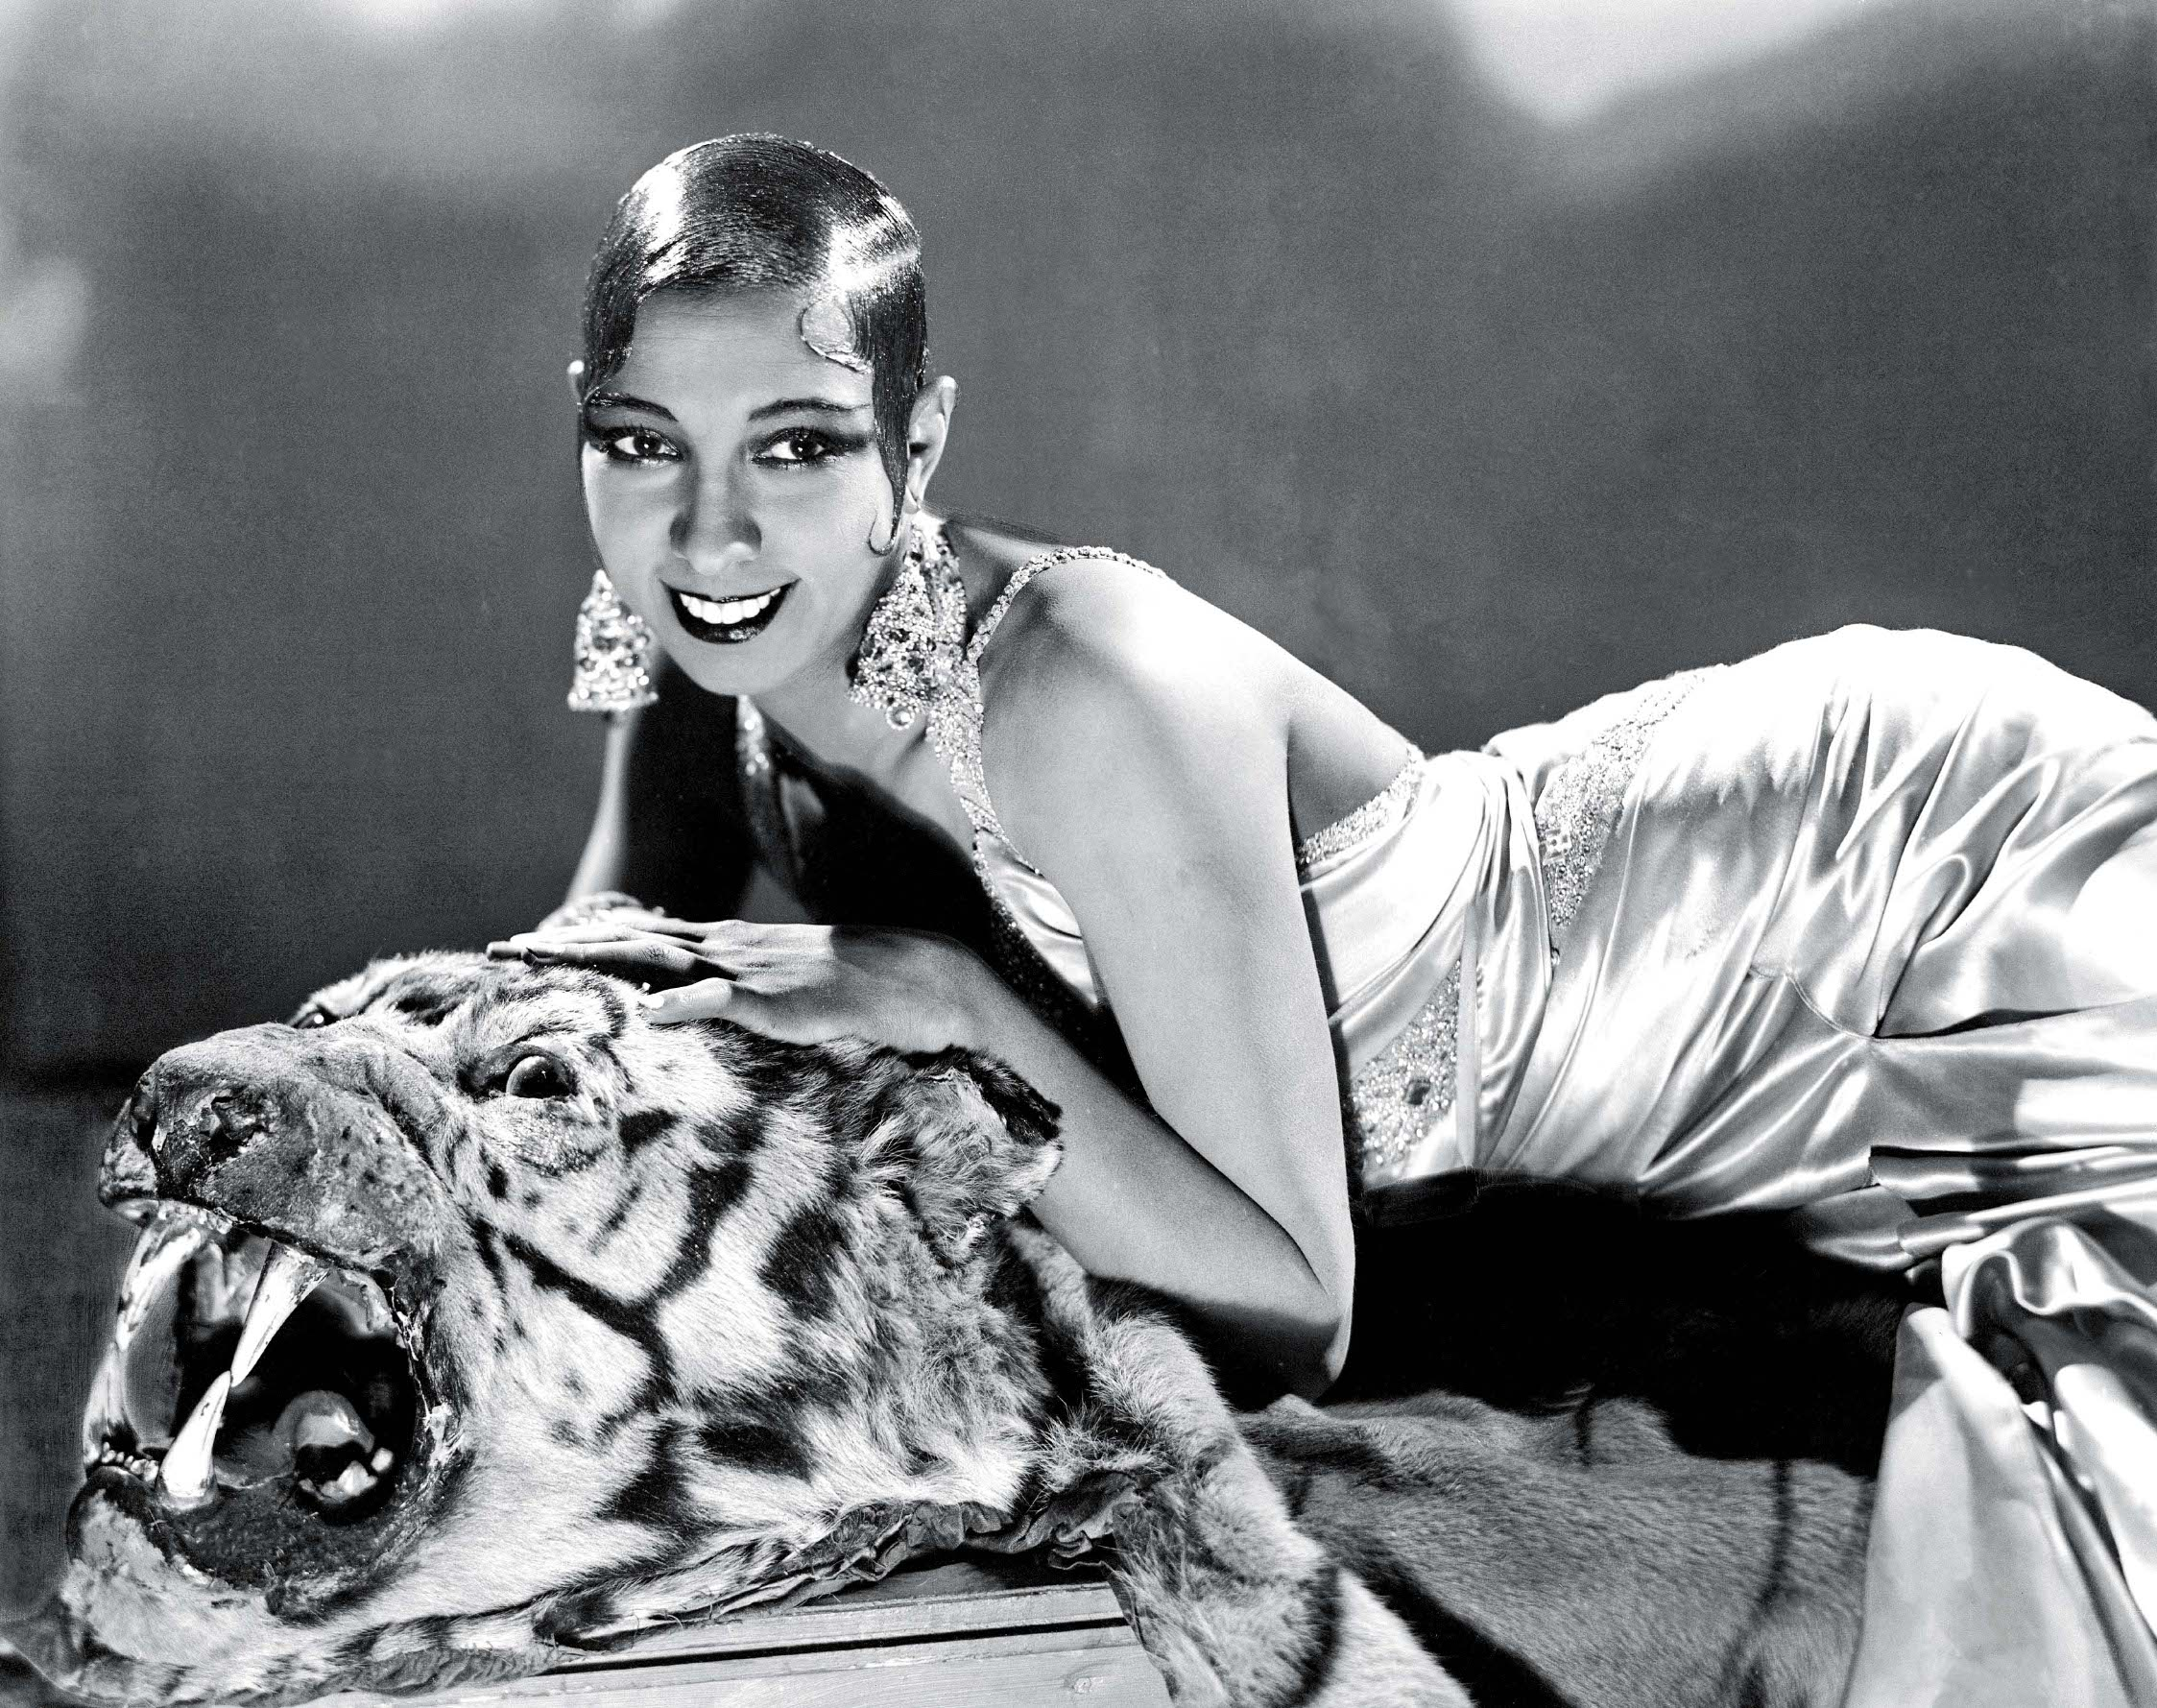 FRANCE - JANUARY 01:  Jospehine BAKER, as young, budding actress, lounging on a tiger skin, posing in a studio around the time of her first sensation La REVUE NEGRE.  (Photo by Keystone-France/Gamma-Keystone via Getty Images)